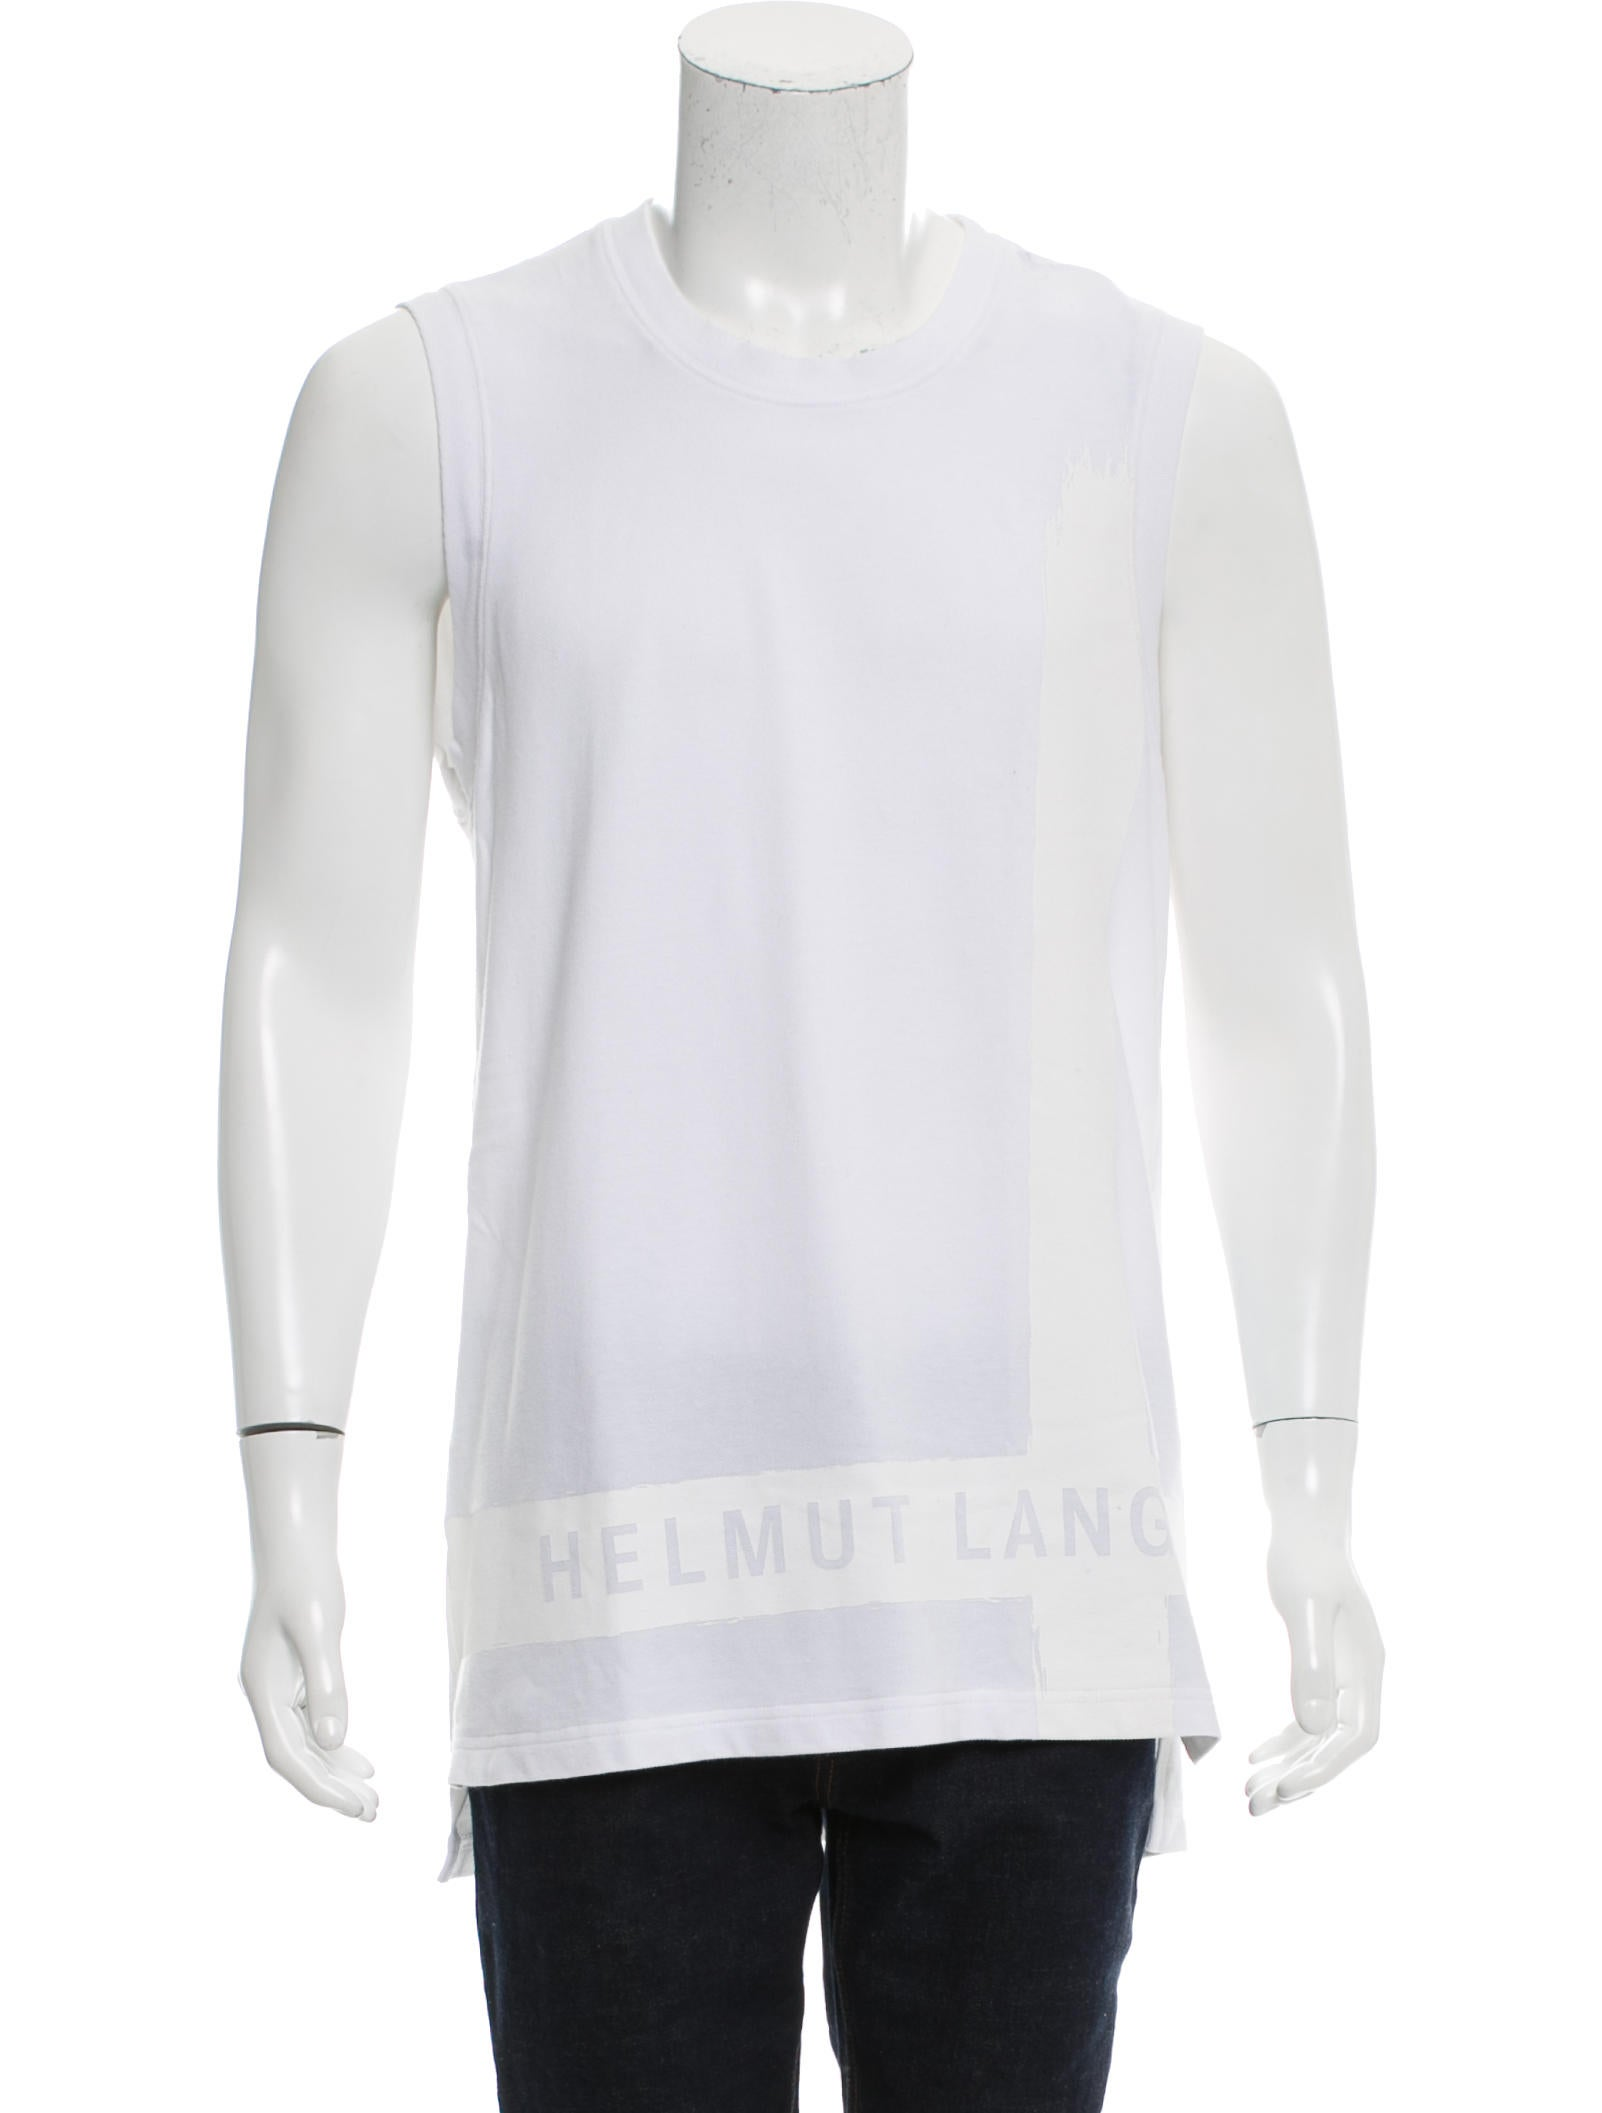 Helmut lang sleeveless graphic t shirt clothing for Sleeveless graphic t shirts